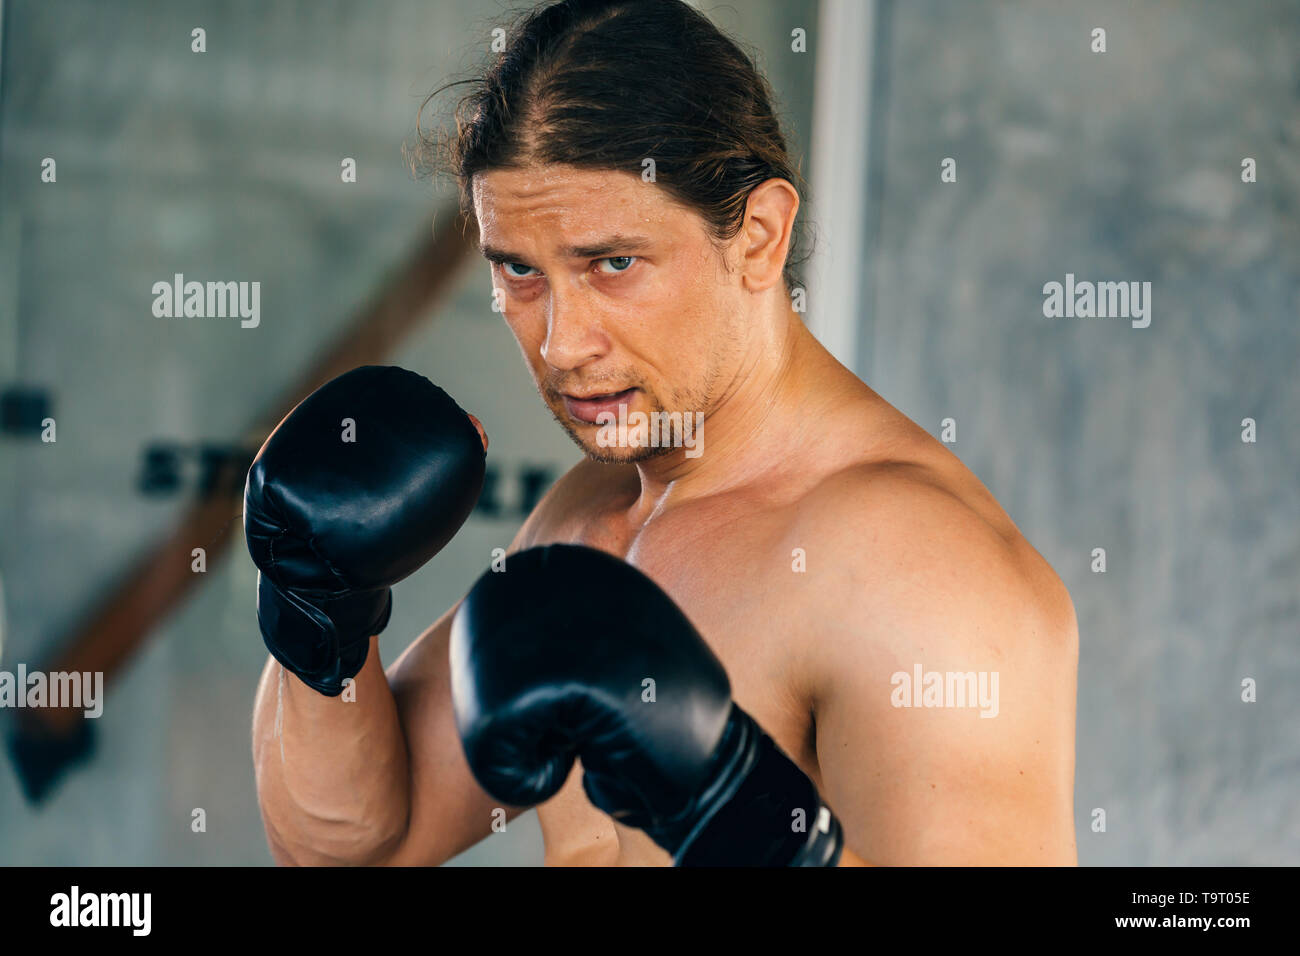 Young Caucasian male boxer wearing boxing gloves in shirtless and boxing stance looking at opponent - Stock Image